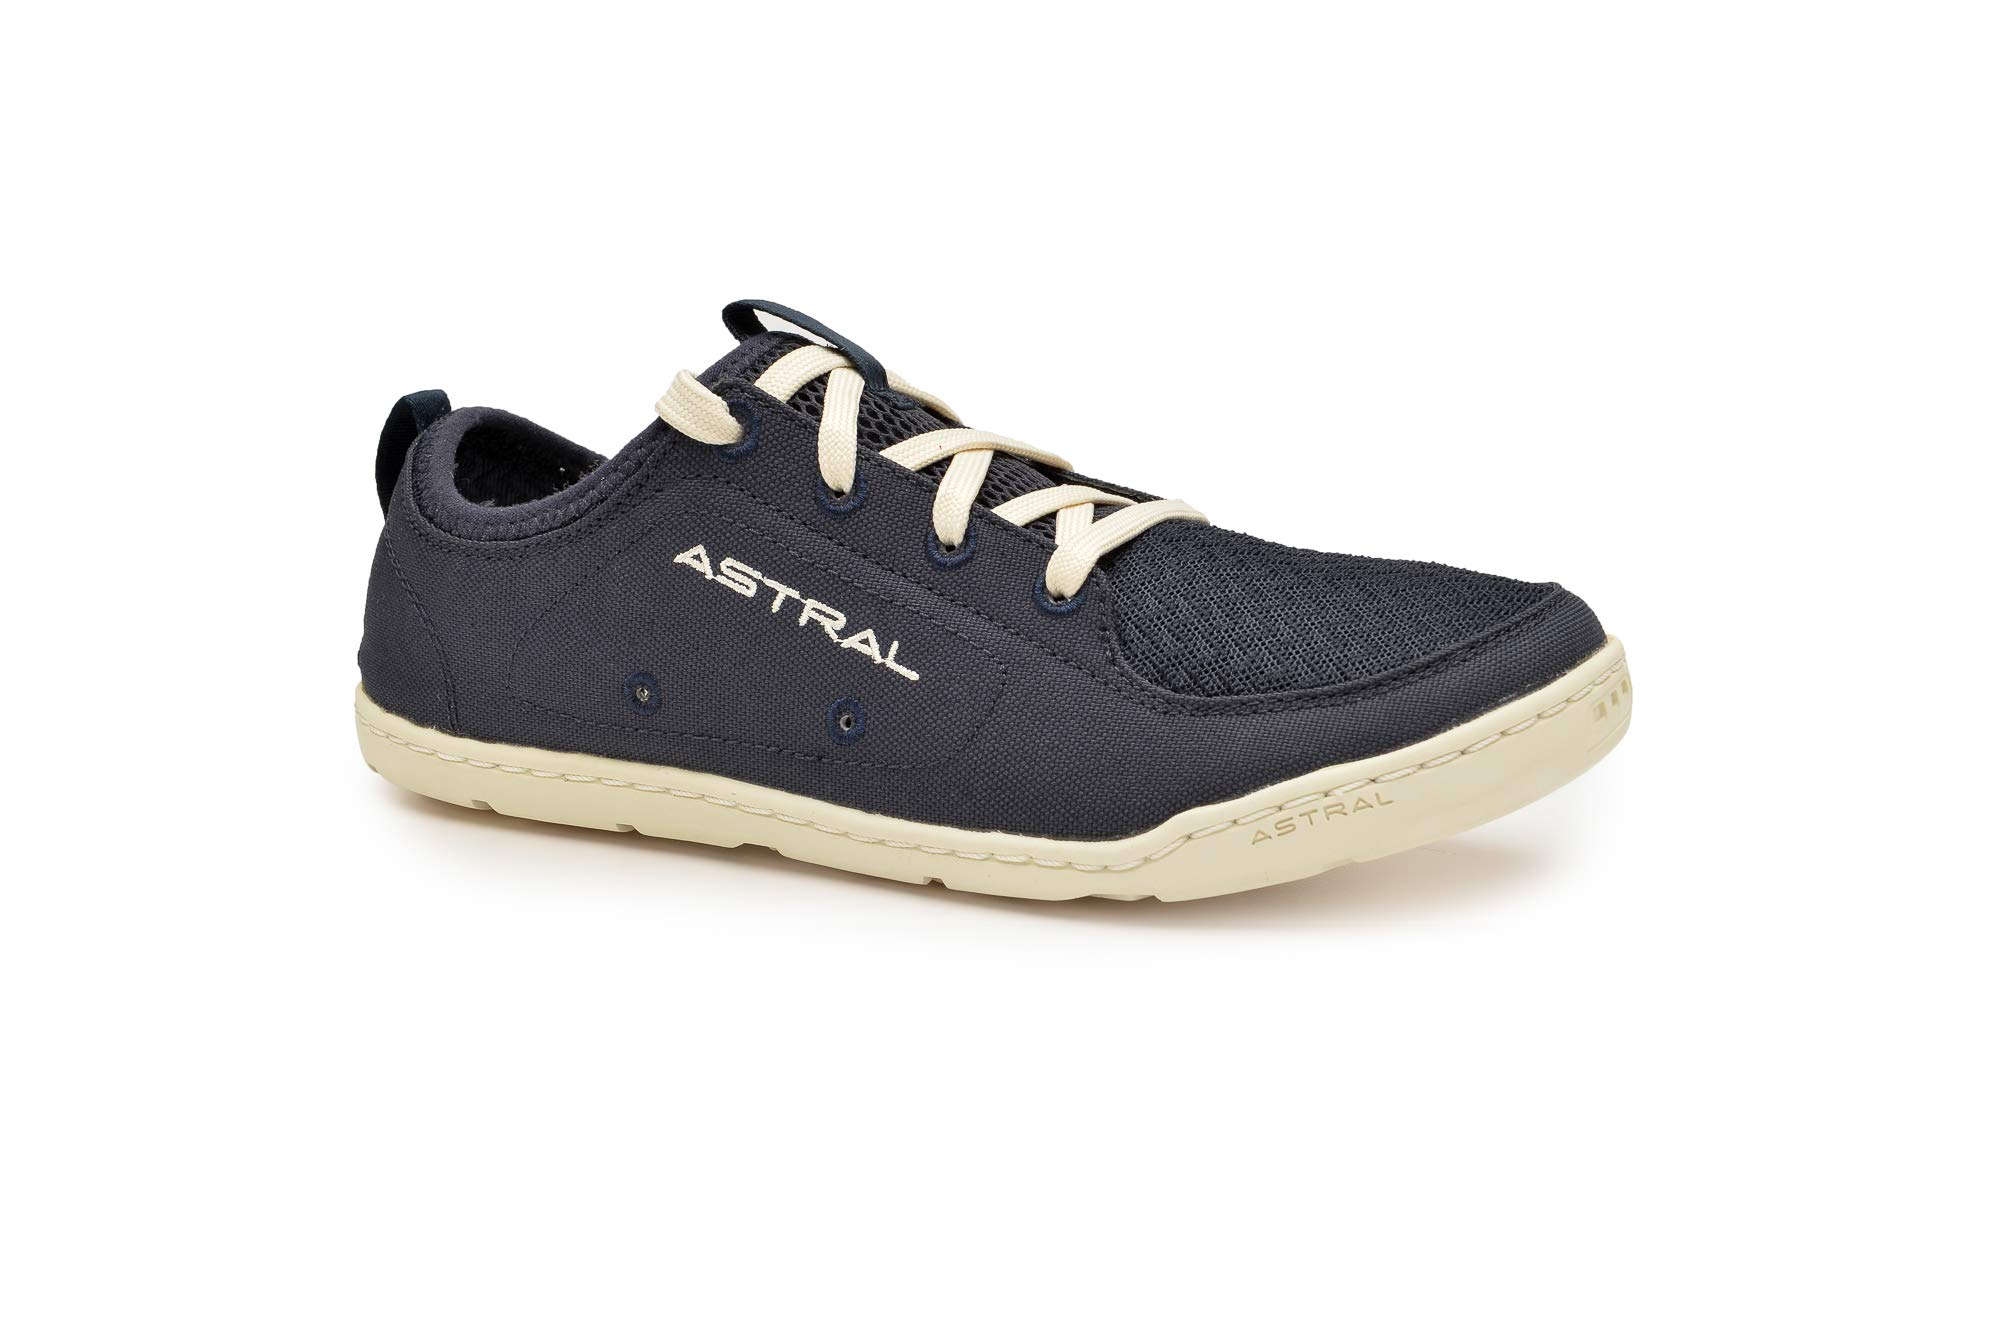 Astral Women's Loyak Everyday Outdoor Minimalist Sneakers, Lightweight and Flexible, Made for Water, Casual, Travel, and Boat, Navy/White, 9 M US by Astral